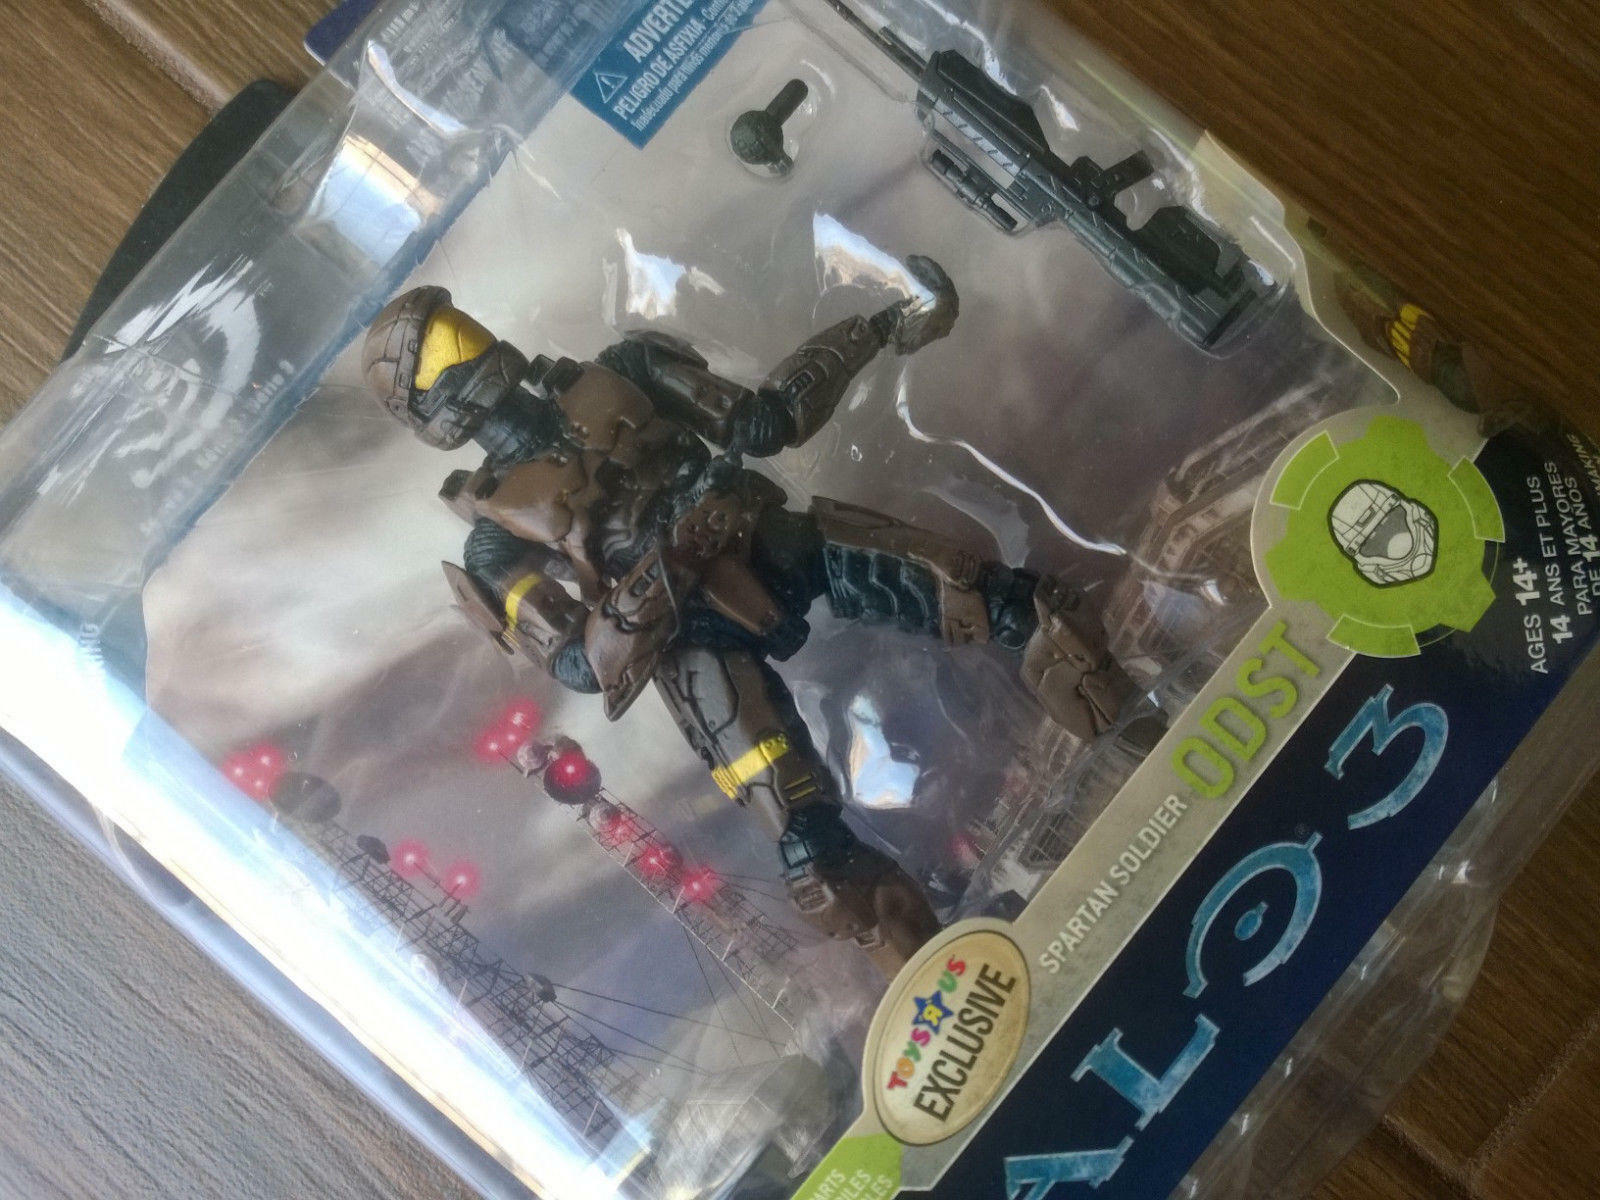 Toys R Us exclusive Halo 3 Series 3  braun ODST  Action Figure, Xbox toysRus NEW